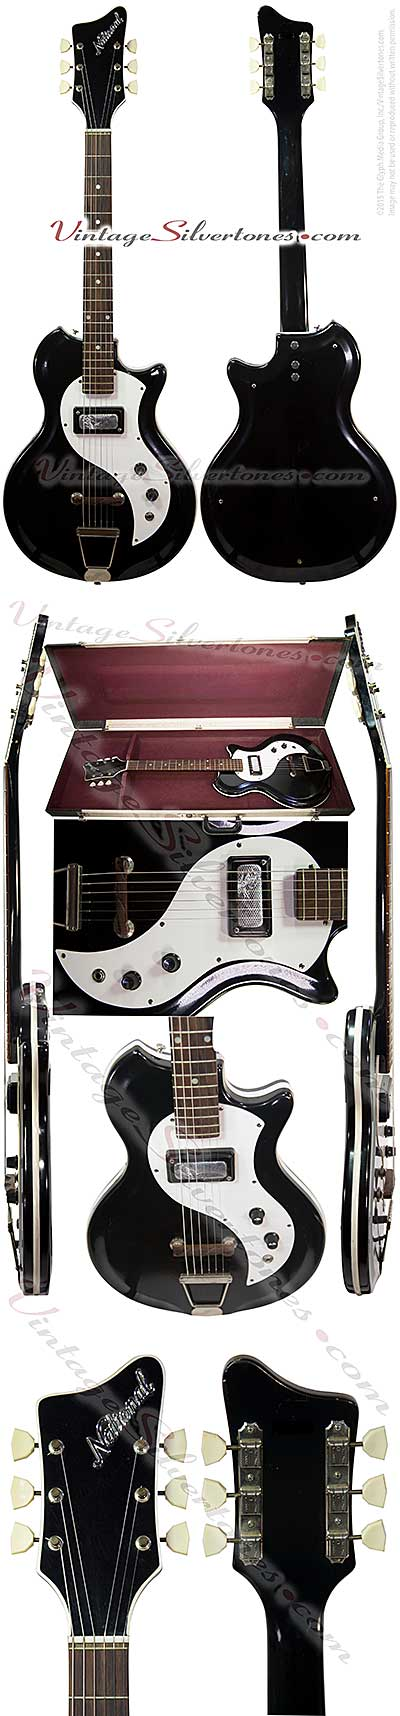 National Varsity 66 N466- semi-hollow body electric guitar 1 pickup, made in Chicago 1964 res-o-glass